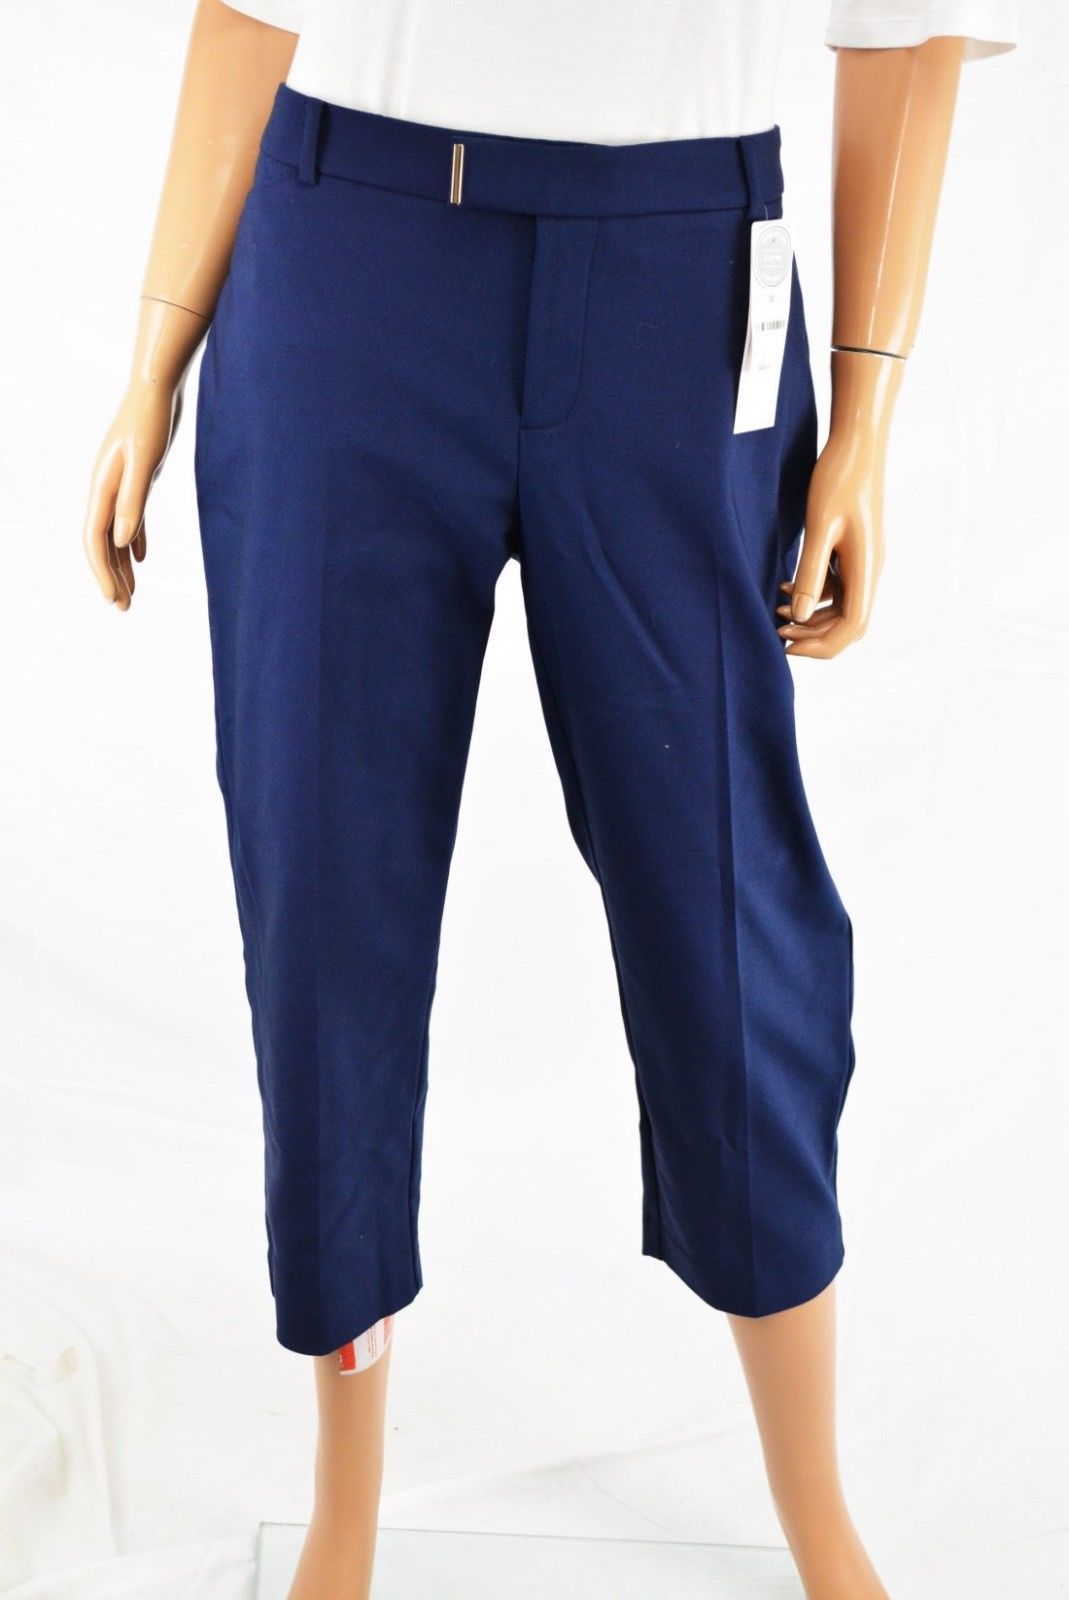 Charter Club Women's Stretch Blue Classic Fit Mid Rise Capri Cropped Pant 12